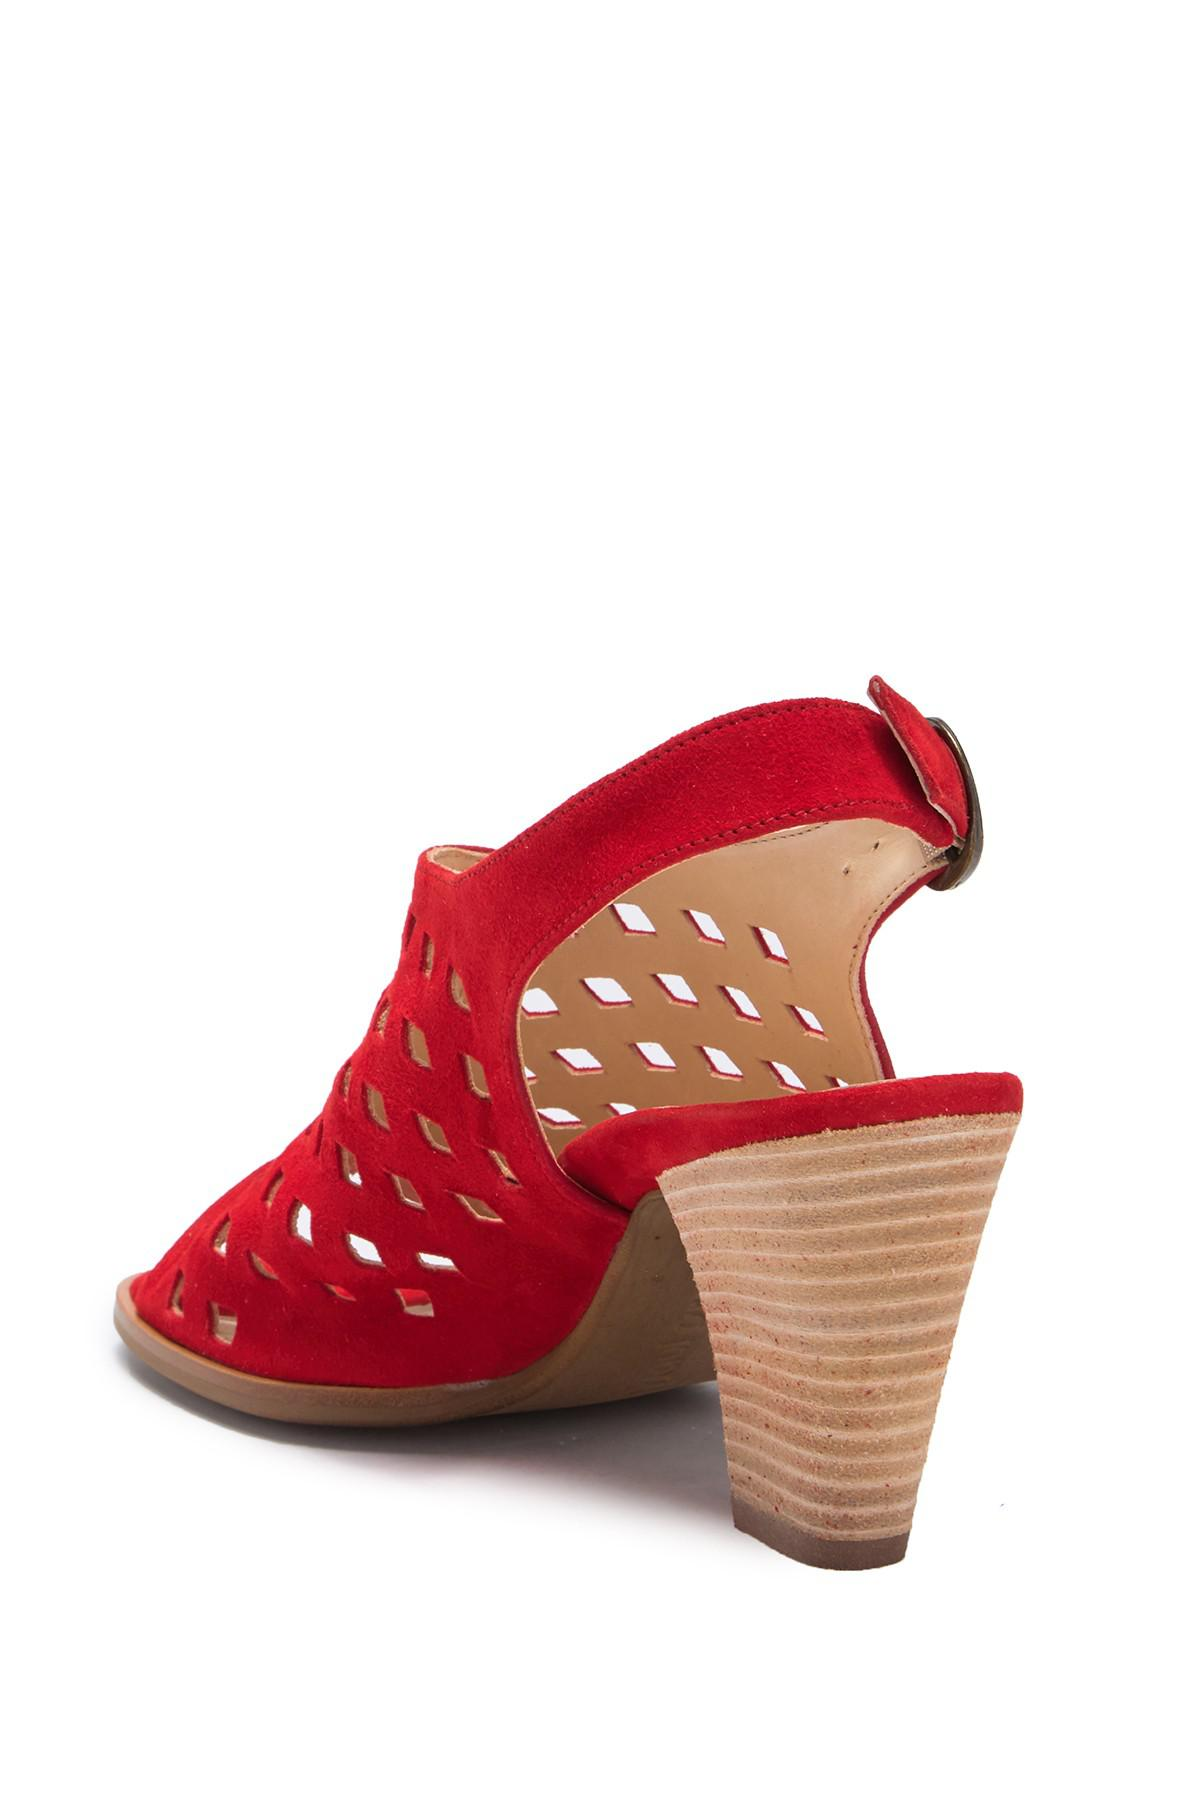 28fc50c810c Lyst - Paul Green Diamond Perforated Sandal in Red